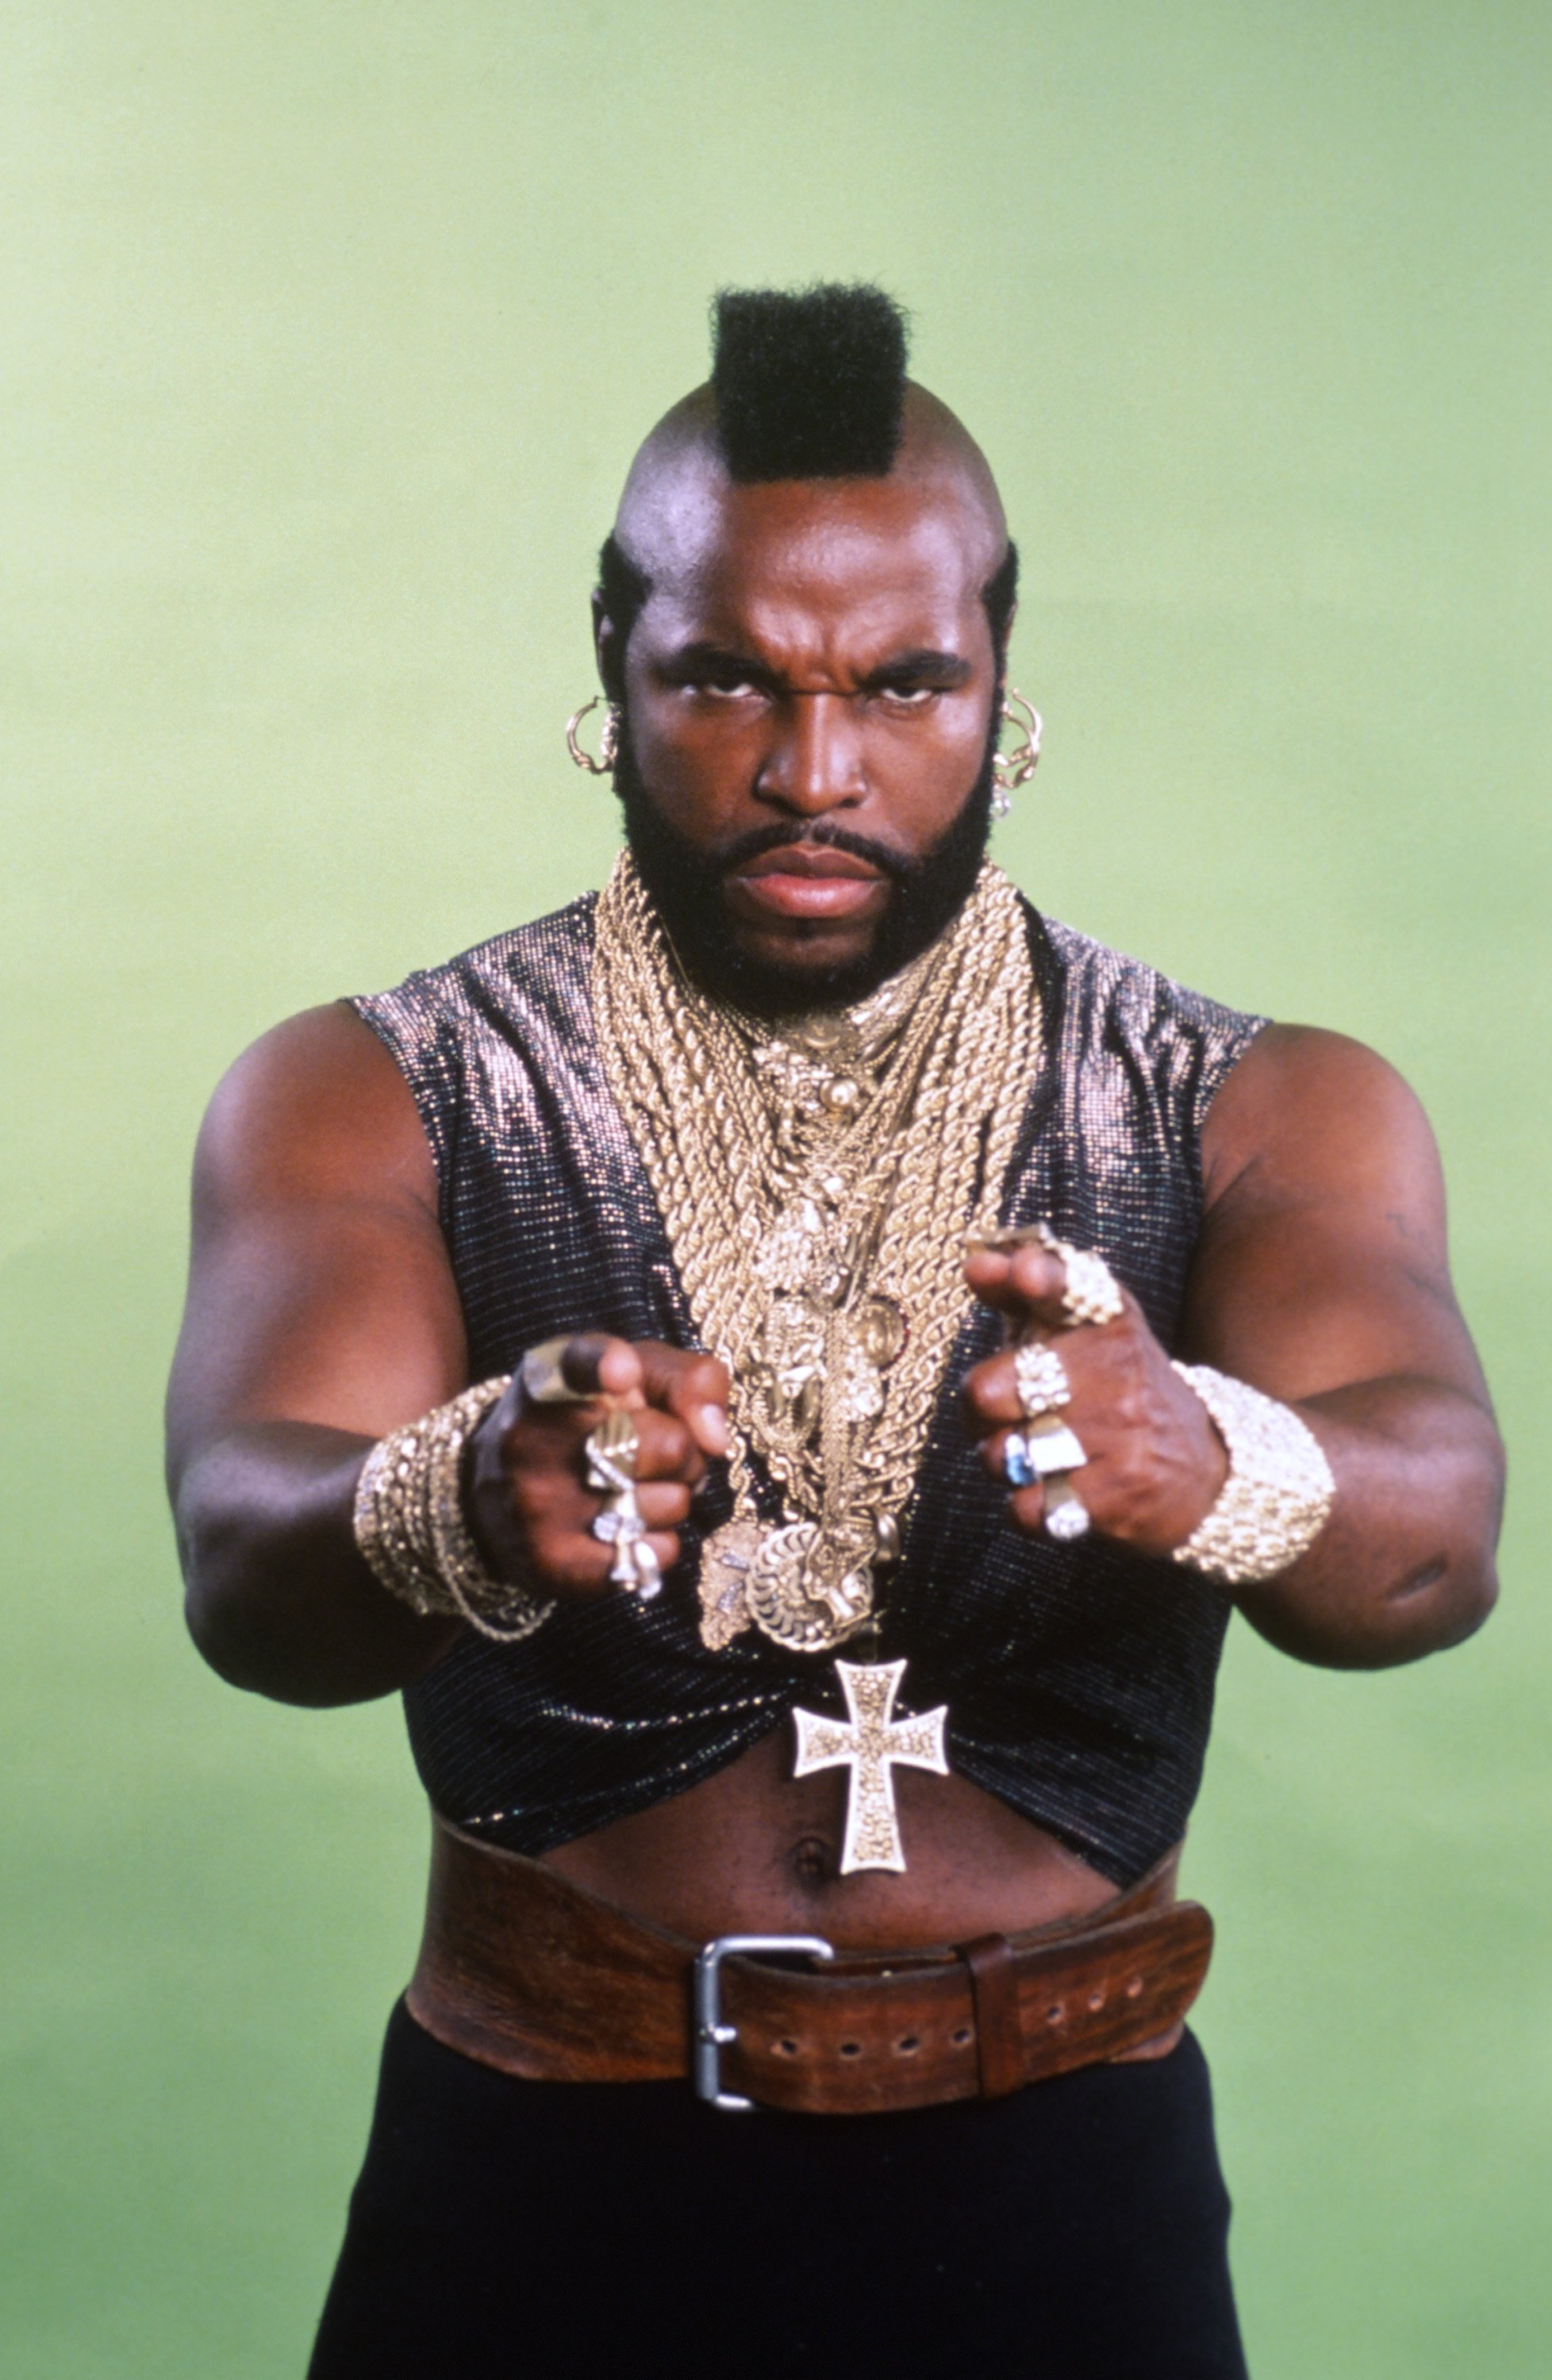 """Mr. T as B.A. Baracus in """"The A Team"""" series. 